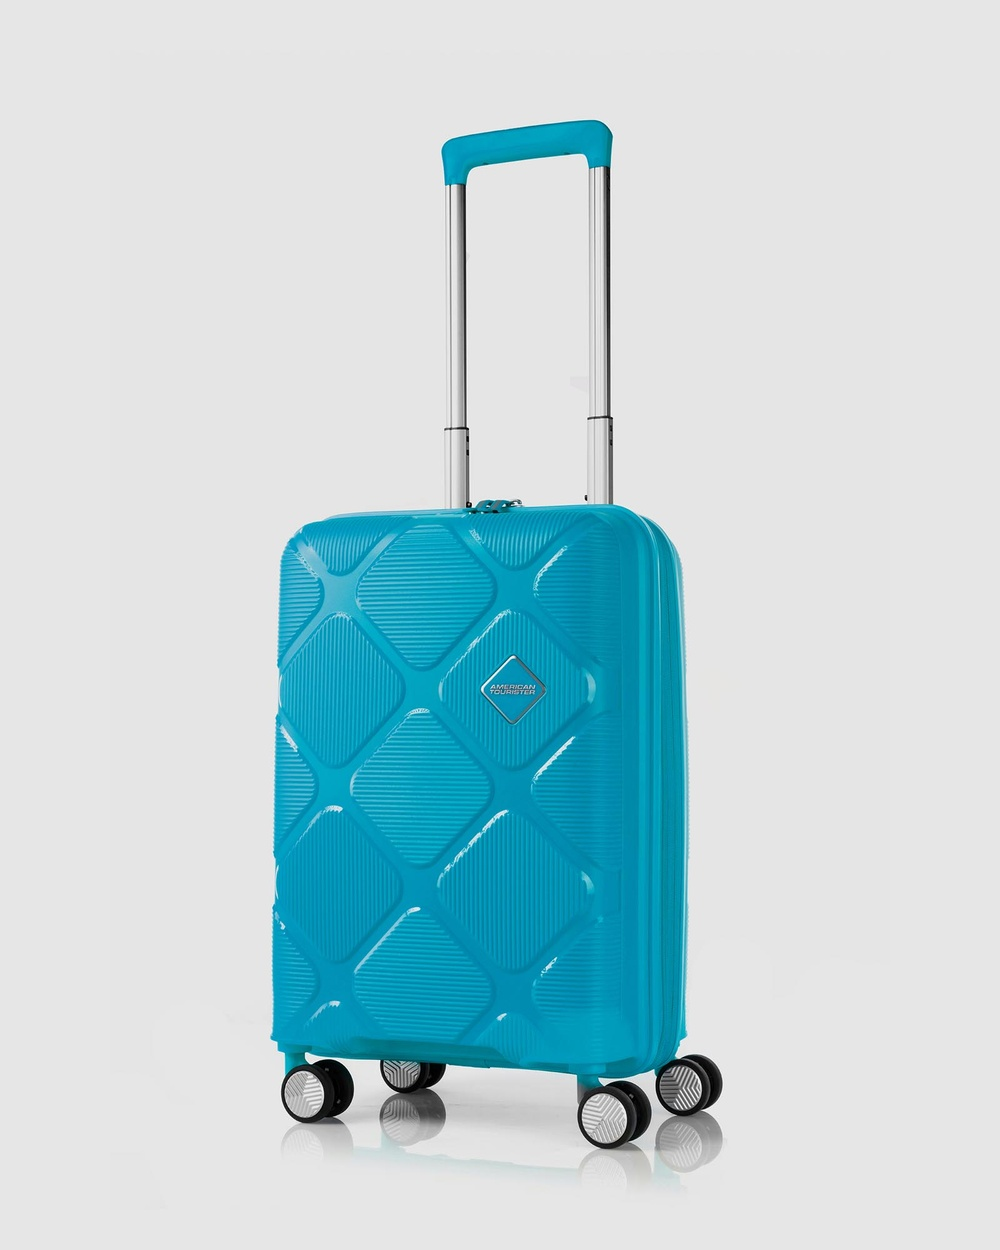 American Tourister Instagon Spinner 55 20 Travel and Luggage Turquoise 55-20